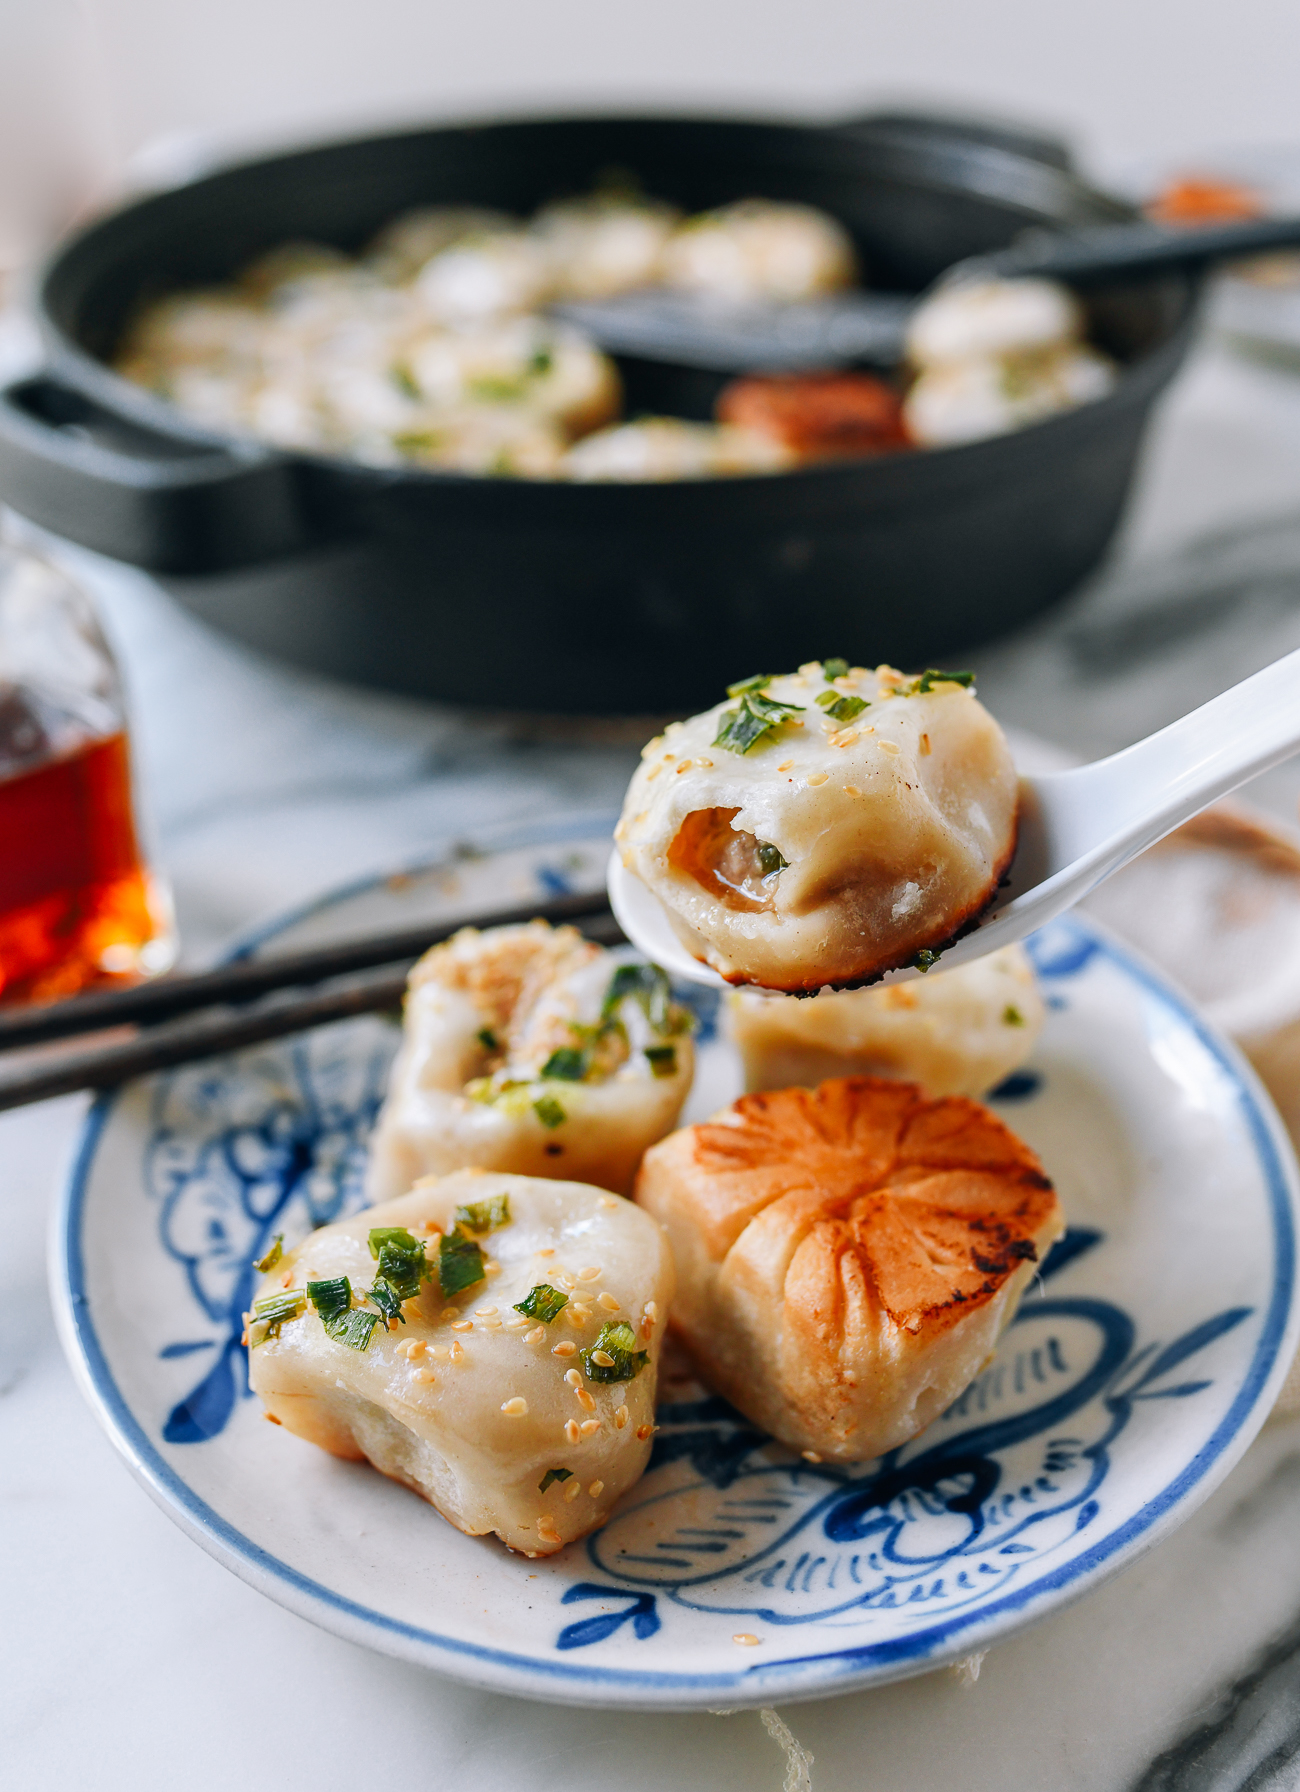 Shanghai Pan-fried Pork Bun (Shengjian Mantou) with soup inside, thewoksoflife.com